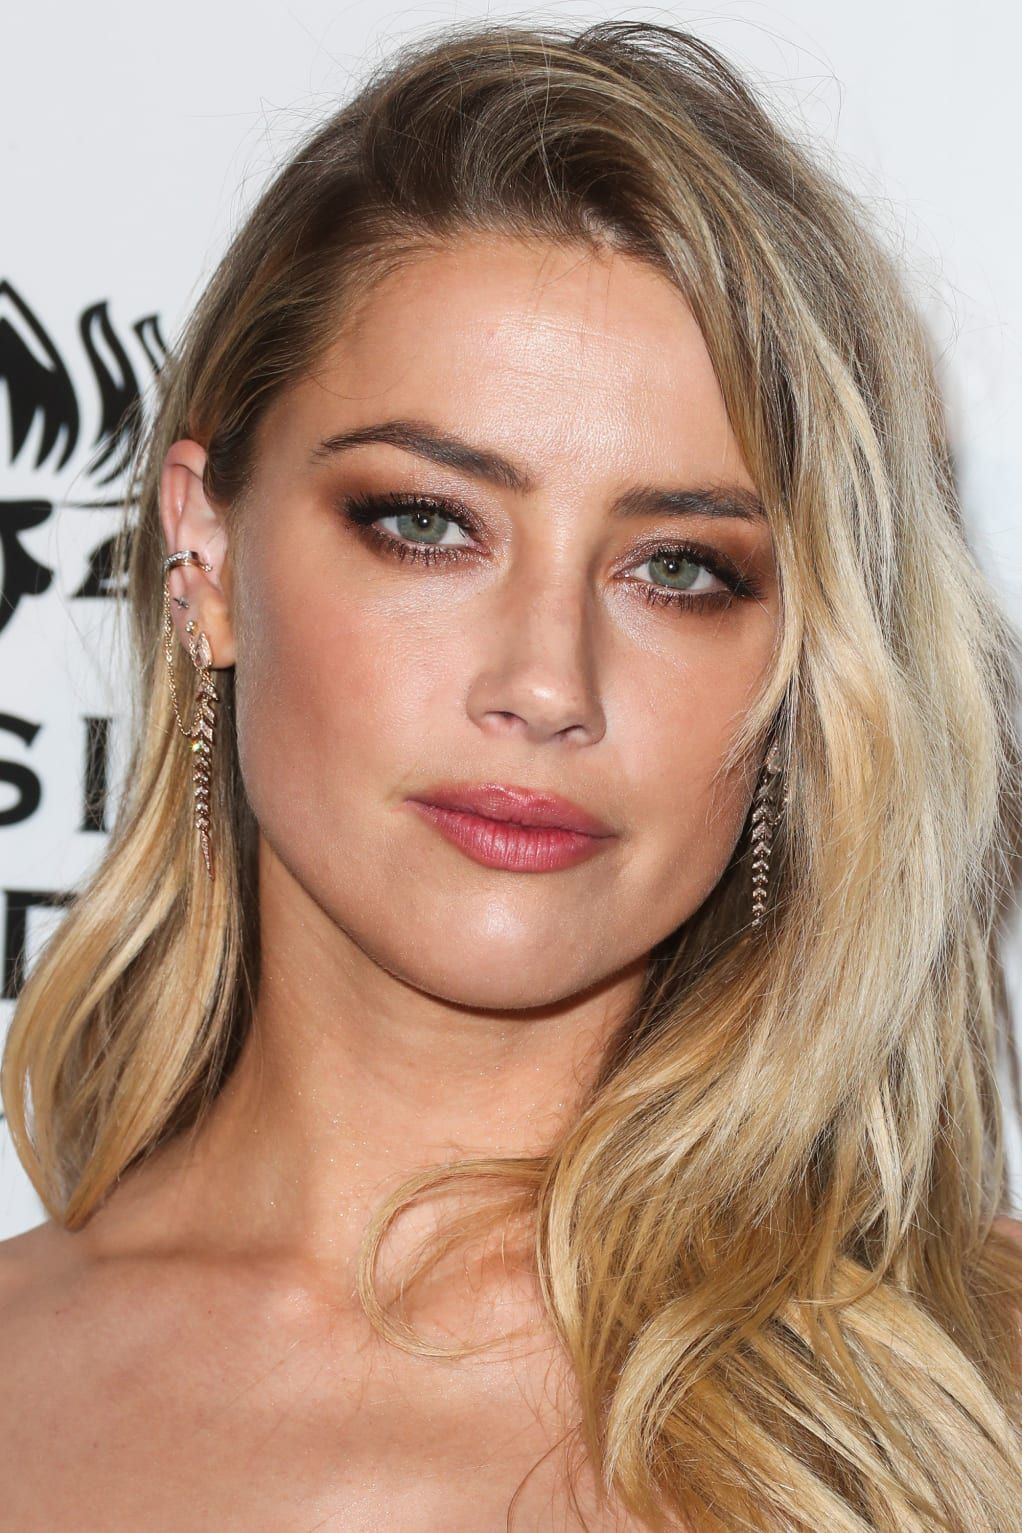 Amber Heard Before And After In 2020 Amber Heard Hair Amber Heard Makeup Amber Heard